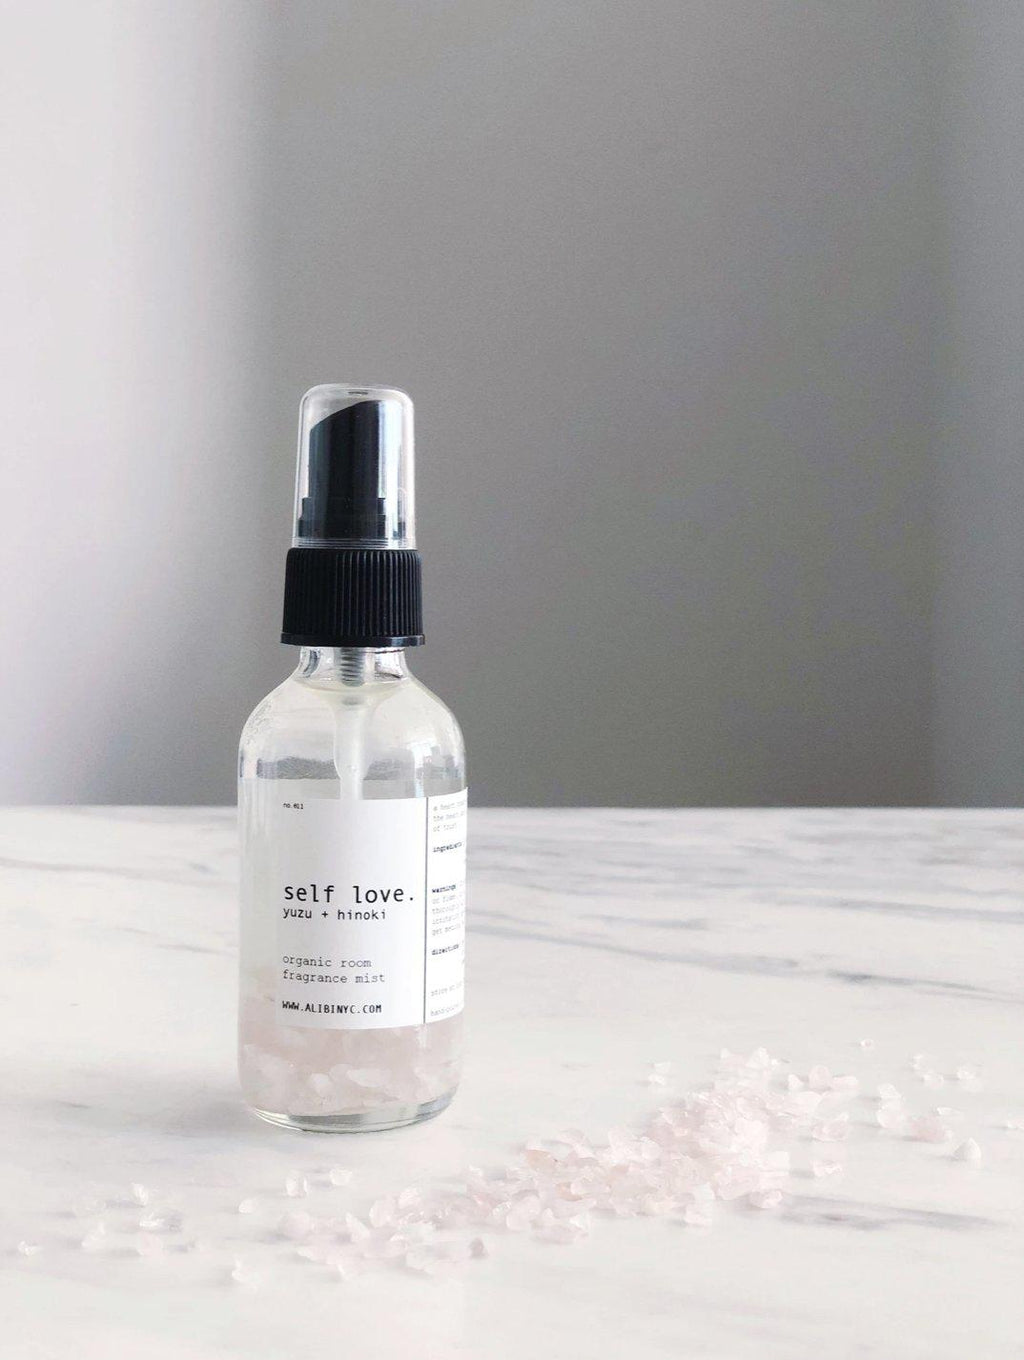 Alibi NYC Self Love Room Mist